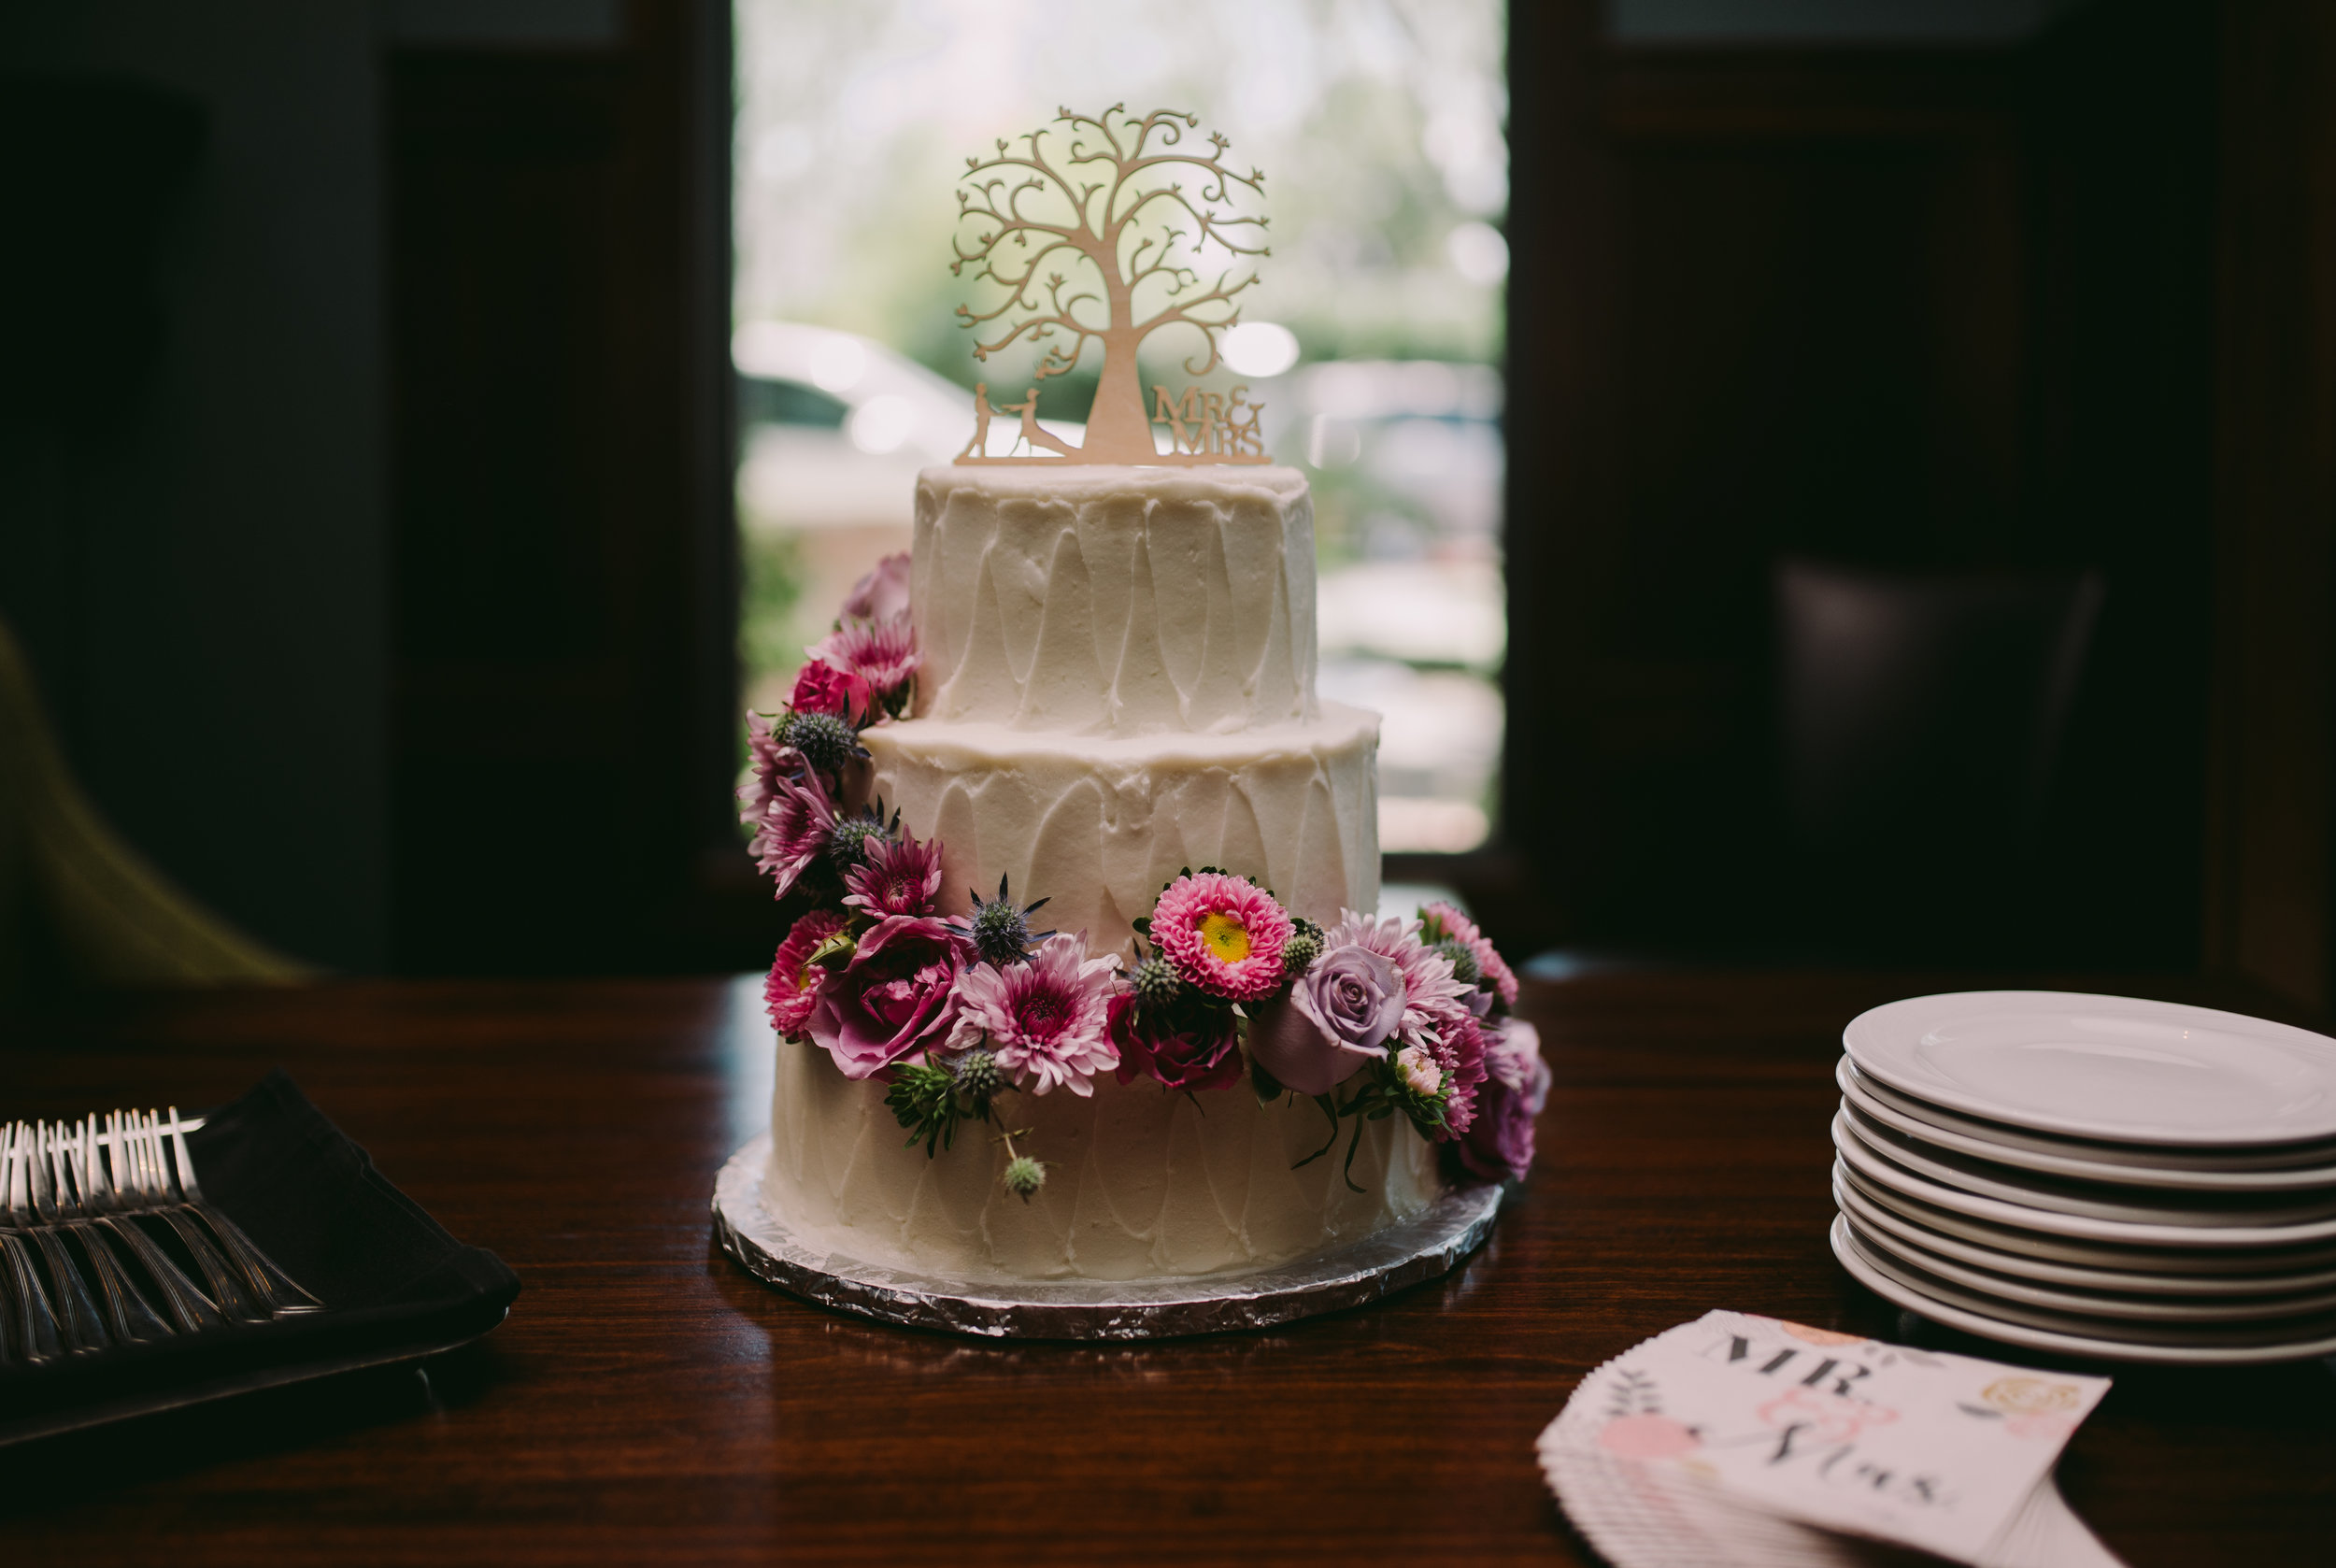 Cake by:  My Goodness Cakes